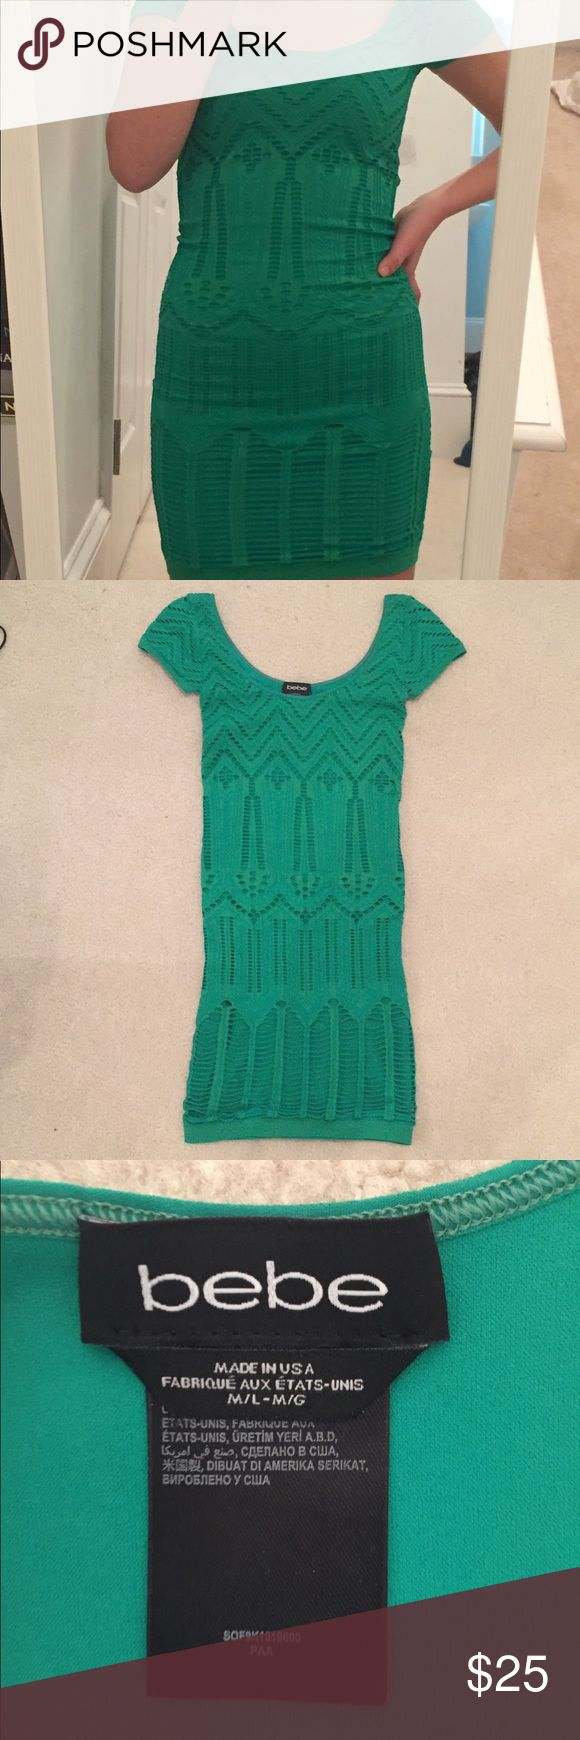 Bebe Green Bodycon Dress Emerald green bodycon dress. Comfortable, worn once, and in great condition. Great for a night out or pair with a nice blazer! Size on tag is Medium, but fits tightly like a Small bebe Dresses Mini